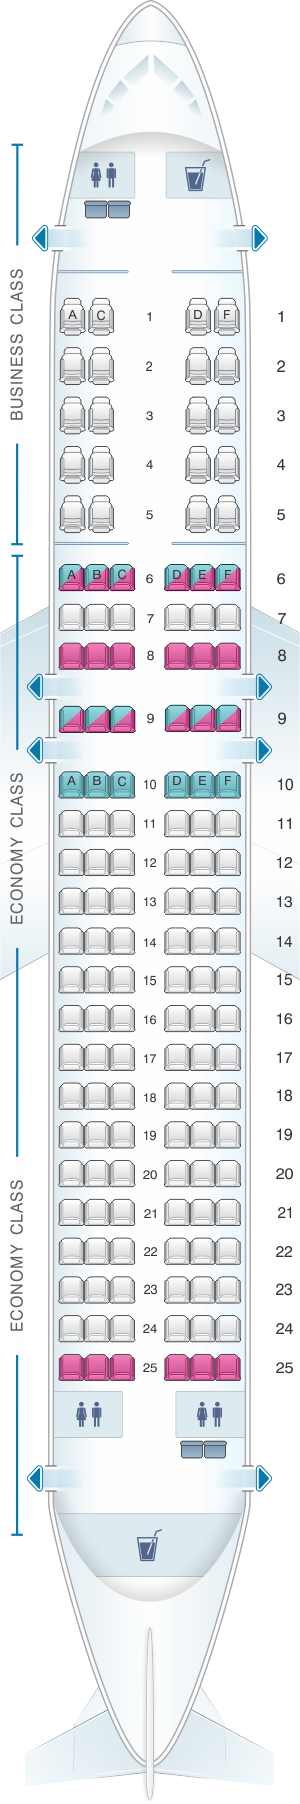 Seat map for Rossiya Airlines Airbus A320 140PAX